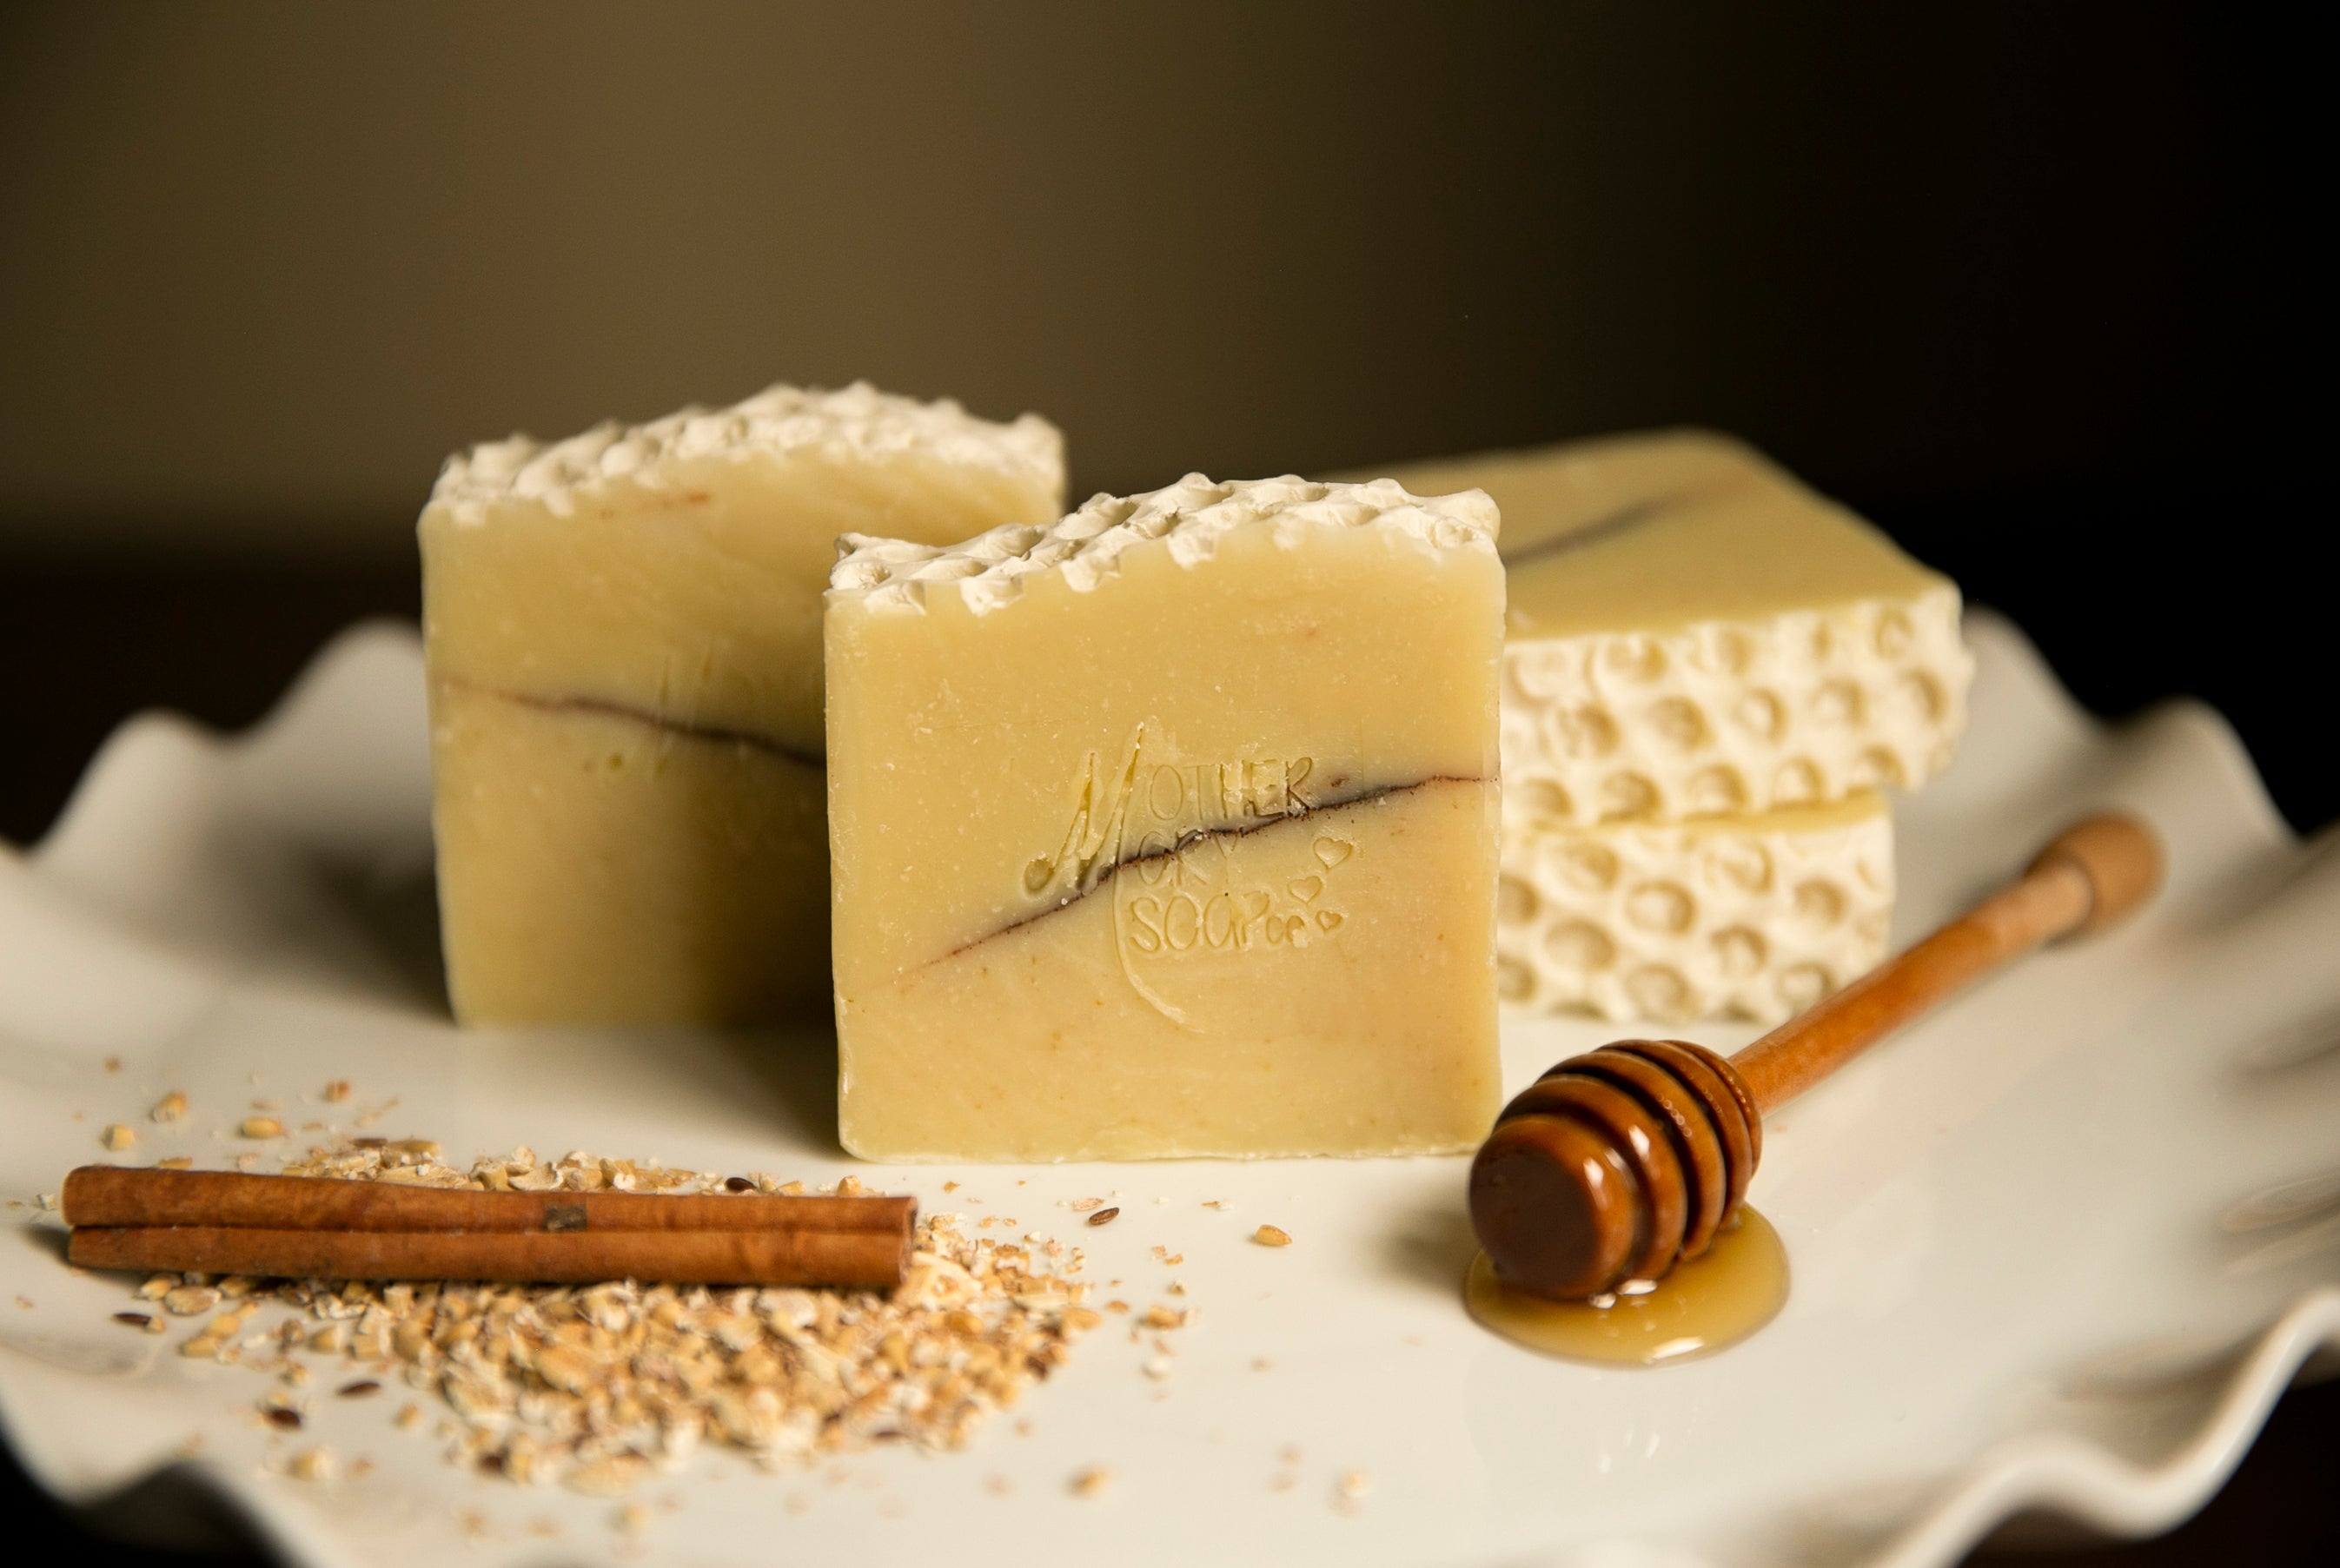 Honey , Oatmeal and Cinnamon Soap